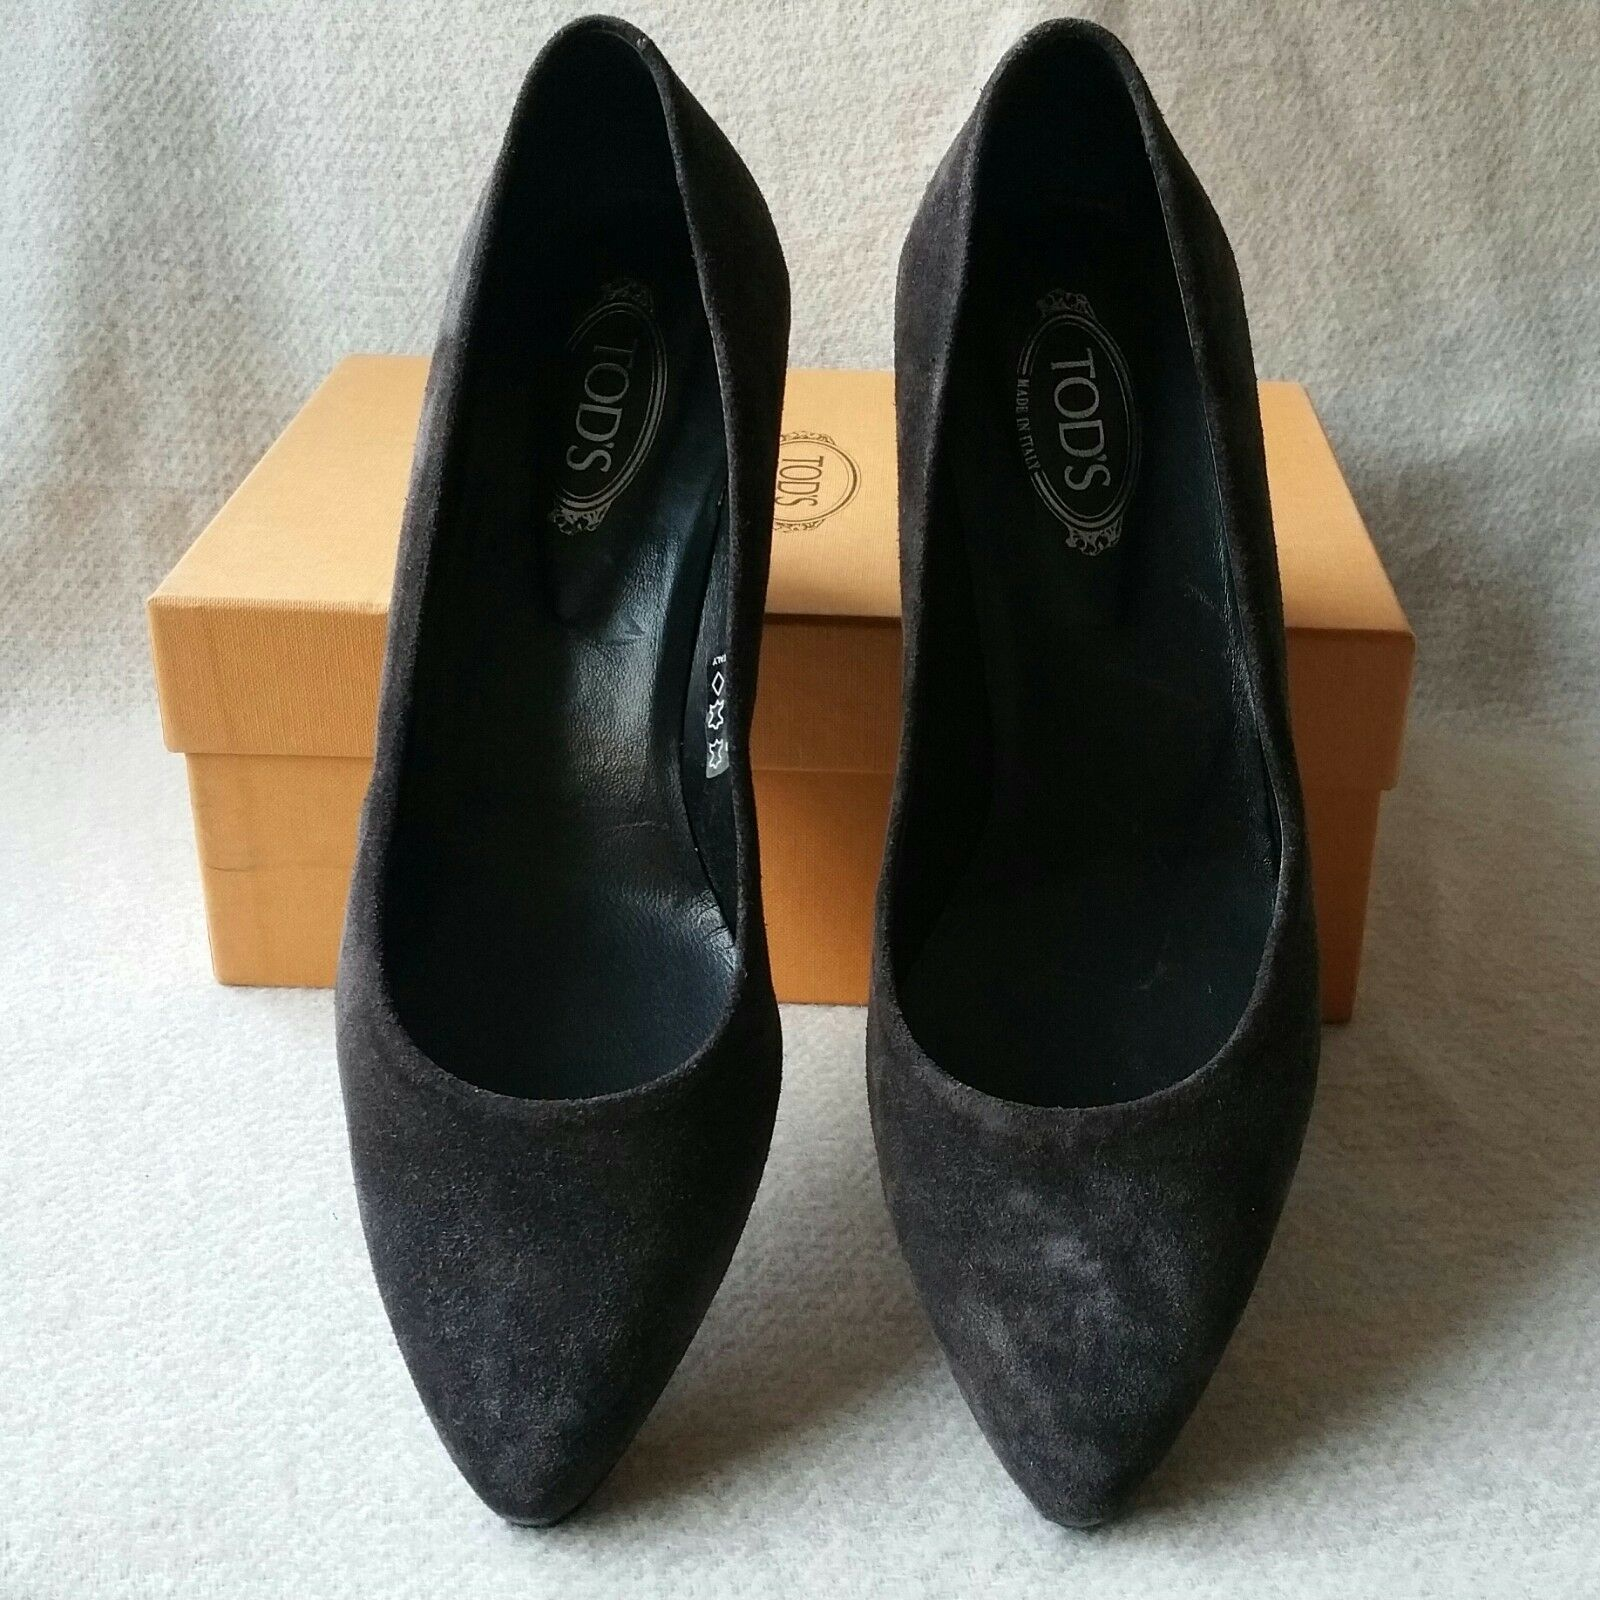 NIB Auth Tod's Tods 38 Suede Pointy Toe Slip Pumps on Niedrig Demi Wedge Pumps Slip Heels schuhes 4b0bc7